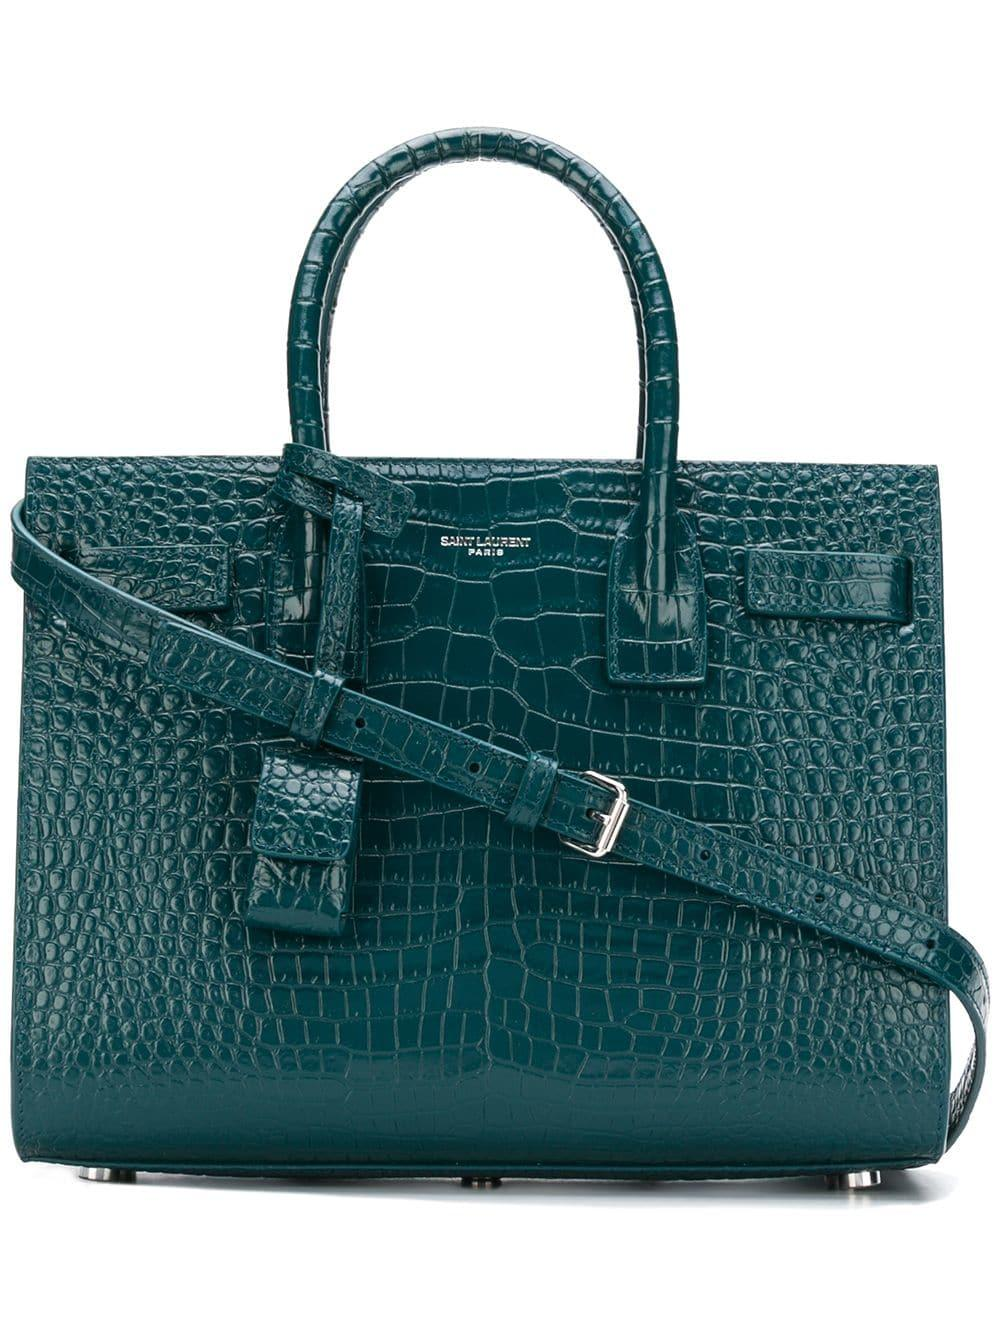 4b95c3313b5 Saint Laurent Small Sac Du Jour Handbag - Green | ModeSens